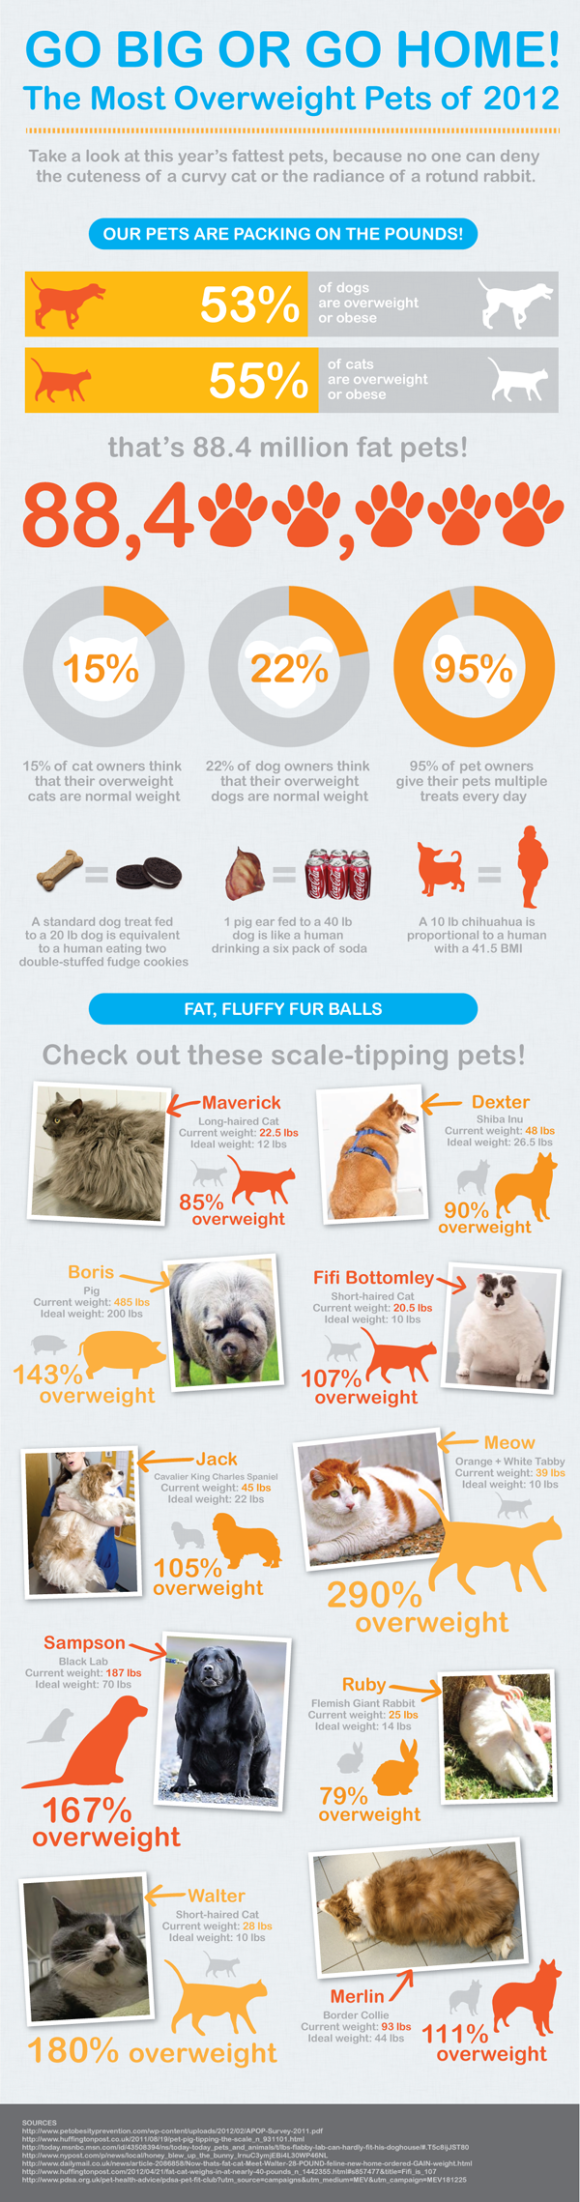 The Most Overweight Pets of 2012